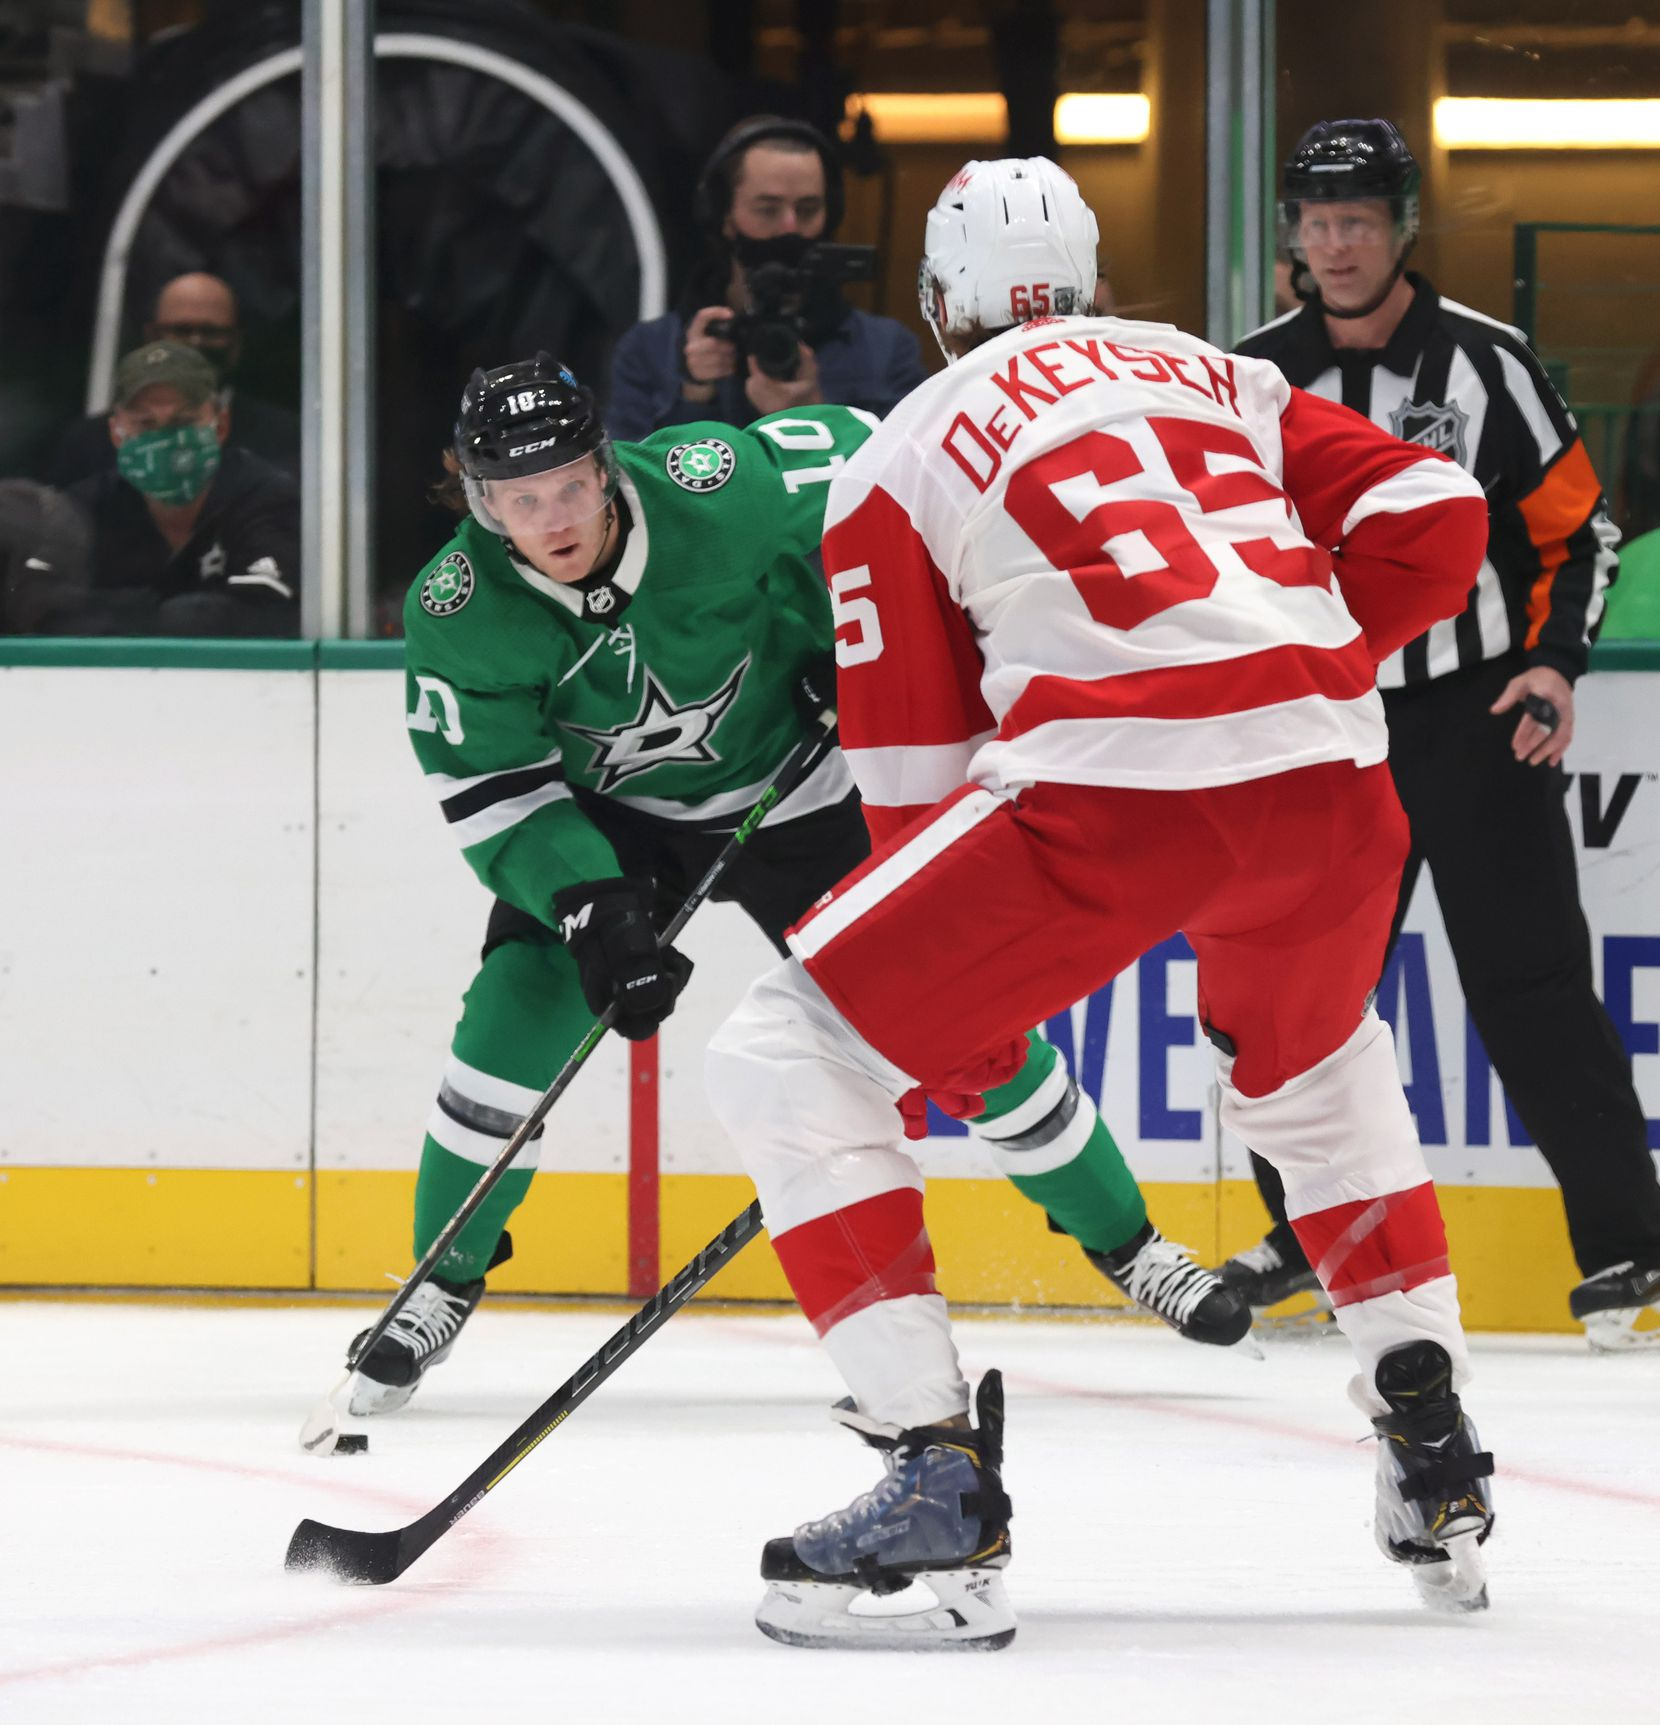 Dallas Stars Ty Dellandrea (10) advances the puck as Detroit Red Wings defenseman Danny DeKeyser (65) defends during the first period of play at American Airlines Center on Tuesday, January 26, 2021in Dallas. (Vernon Bryant/The Dallas Morning News)